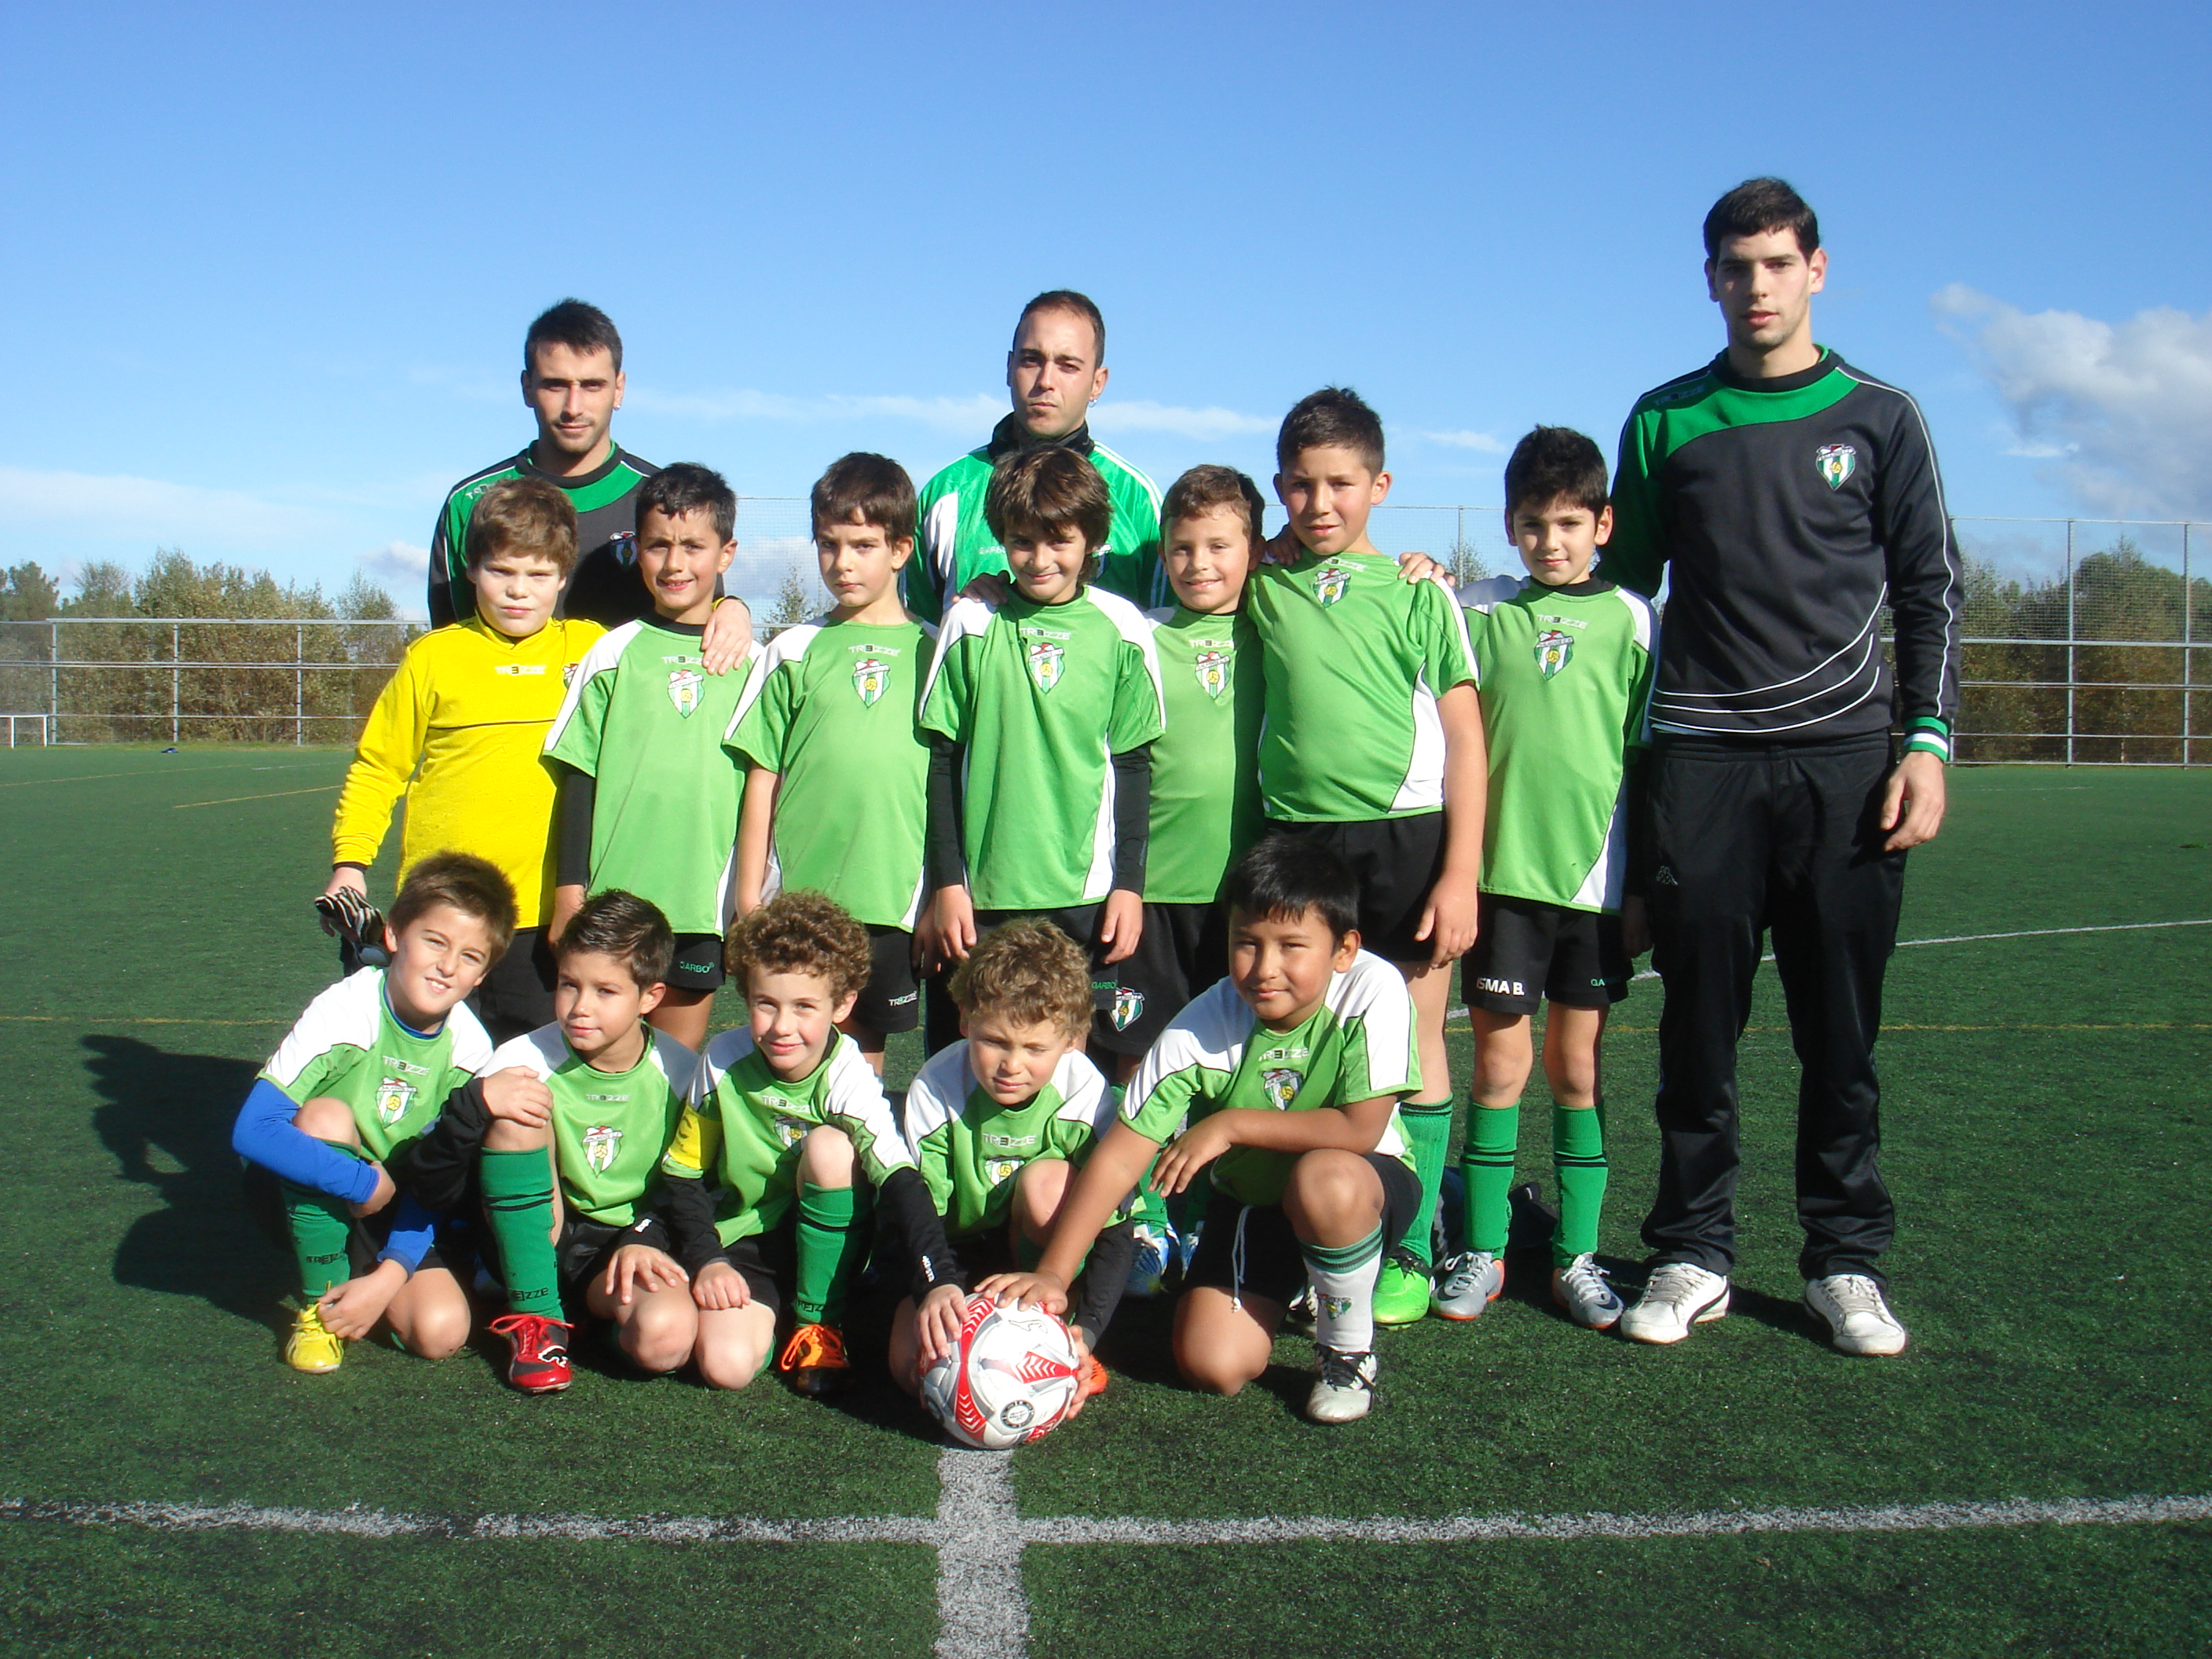 Equipo 2013